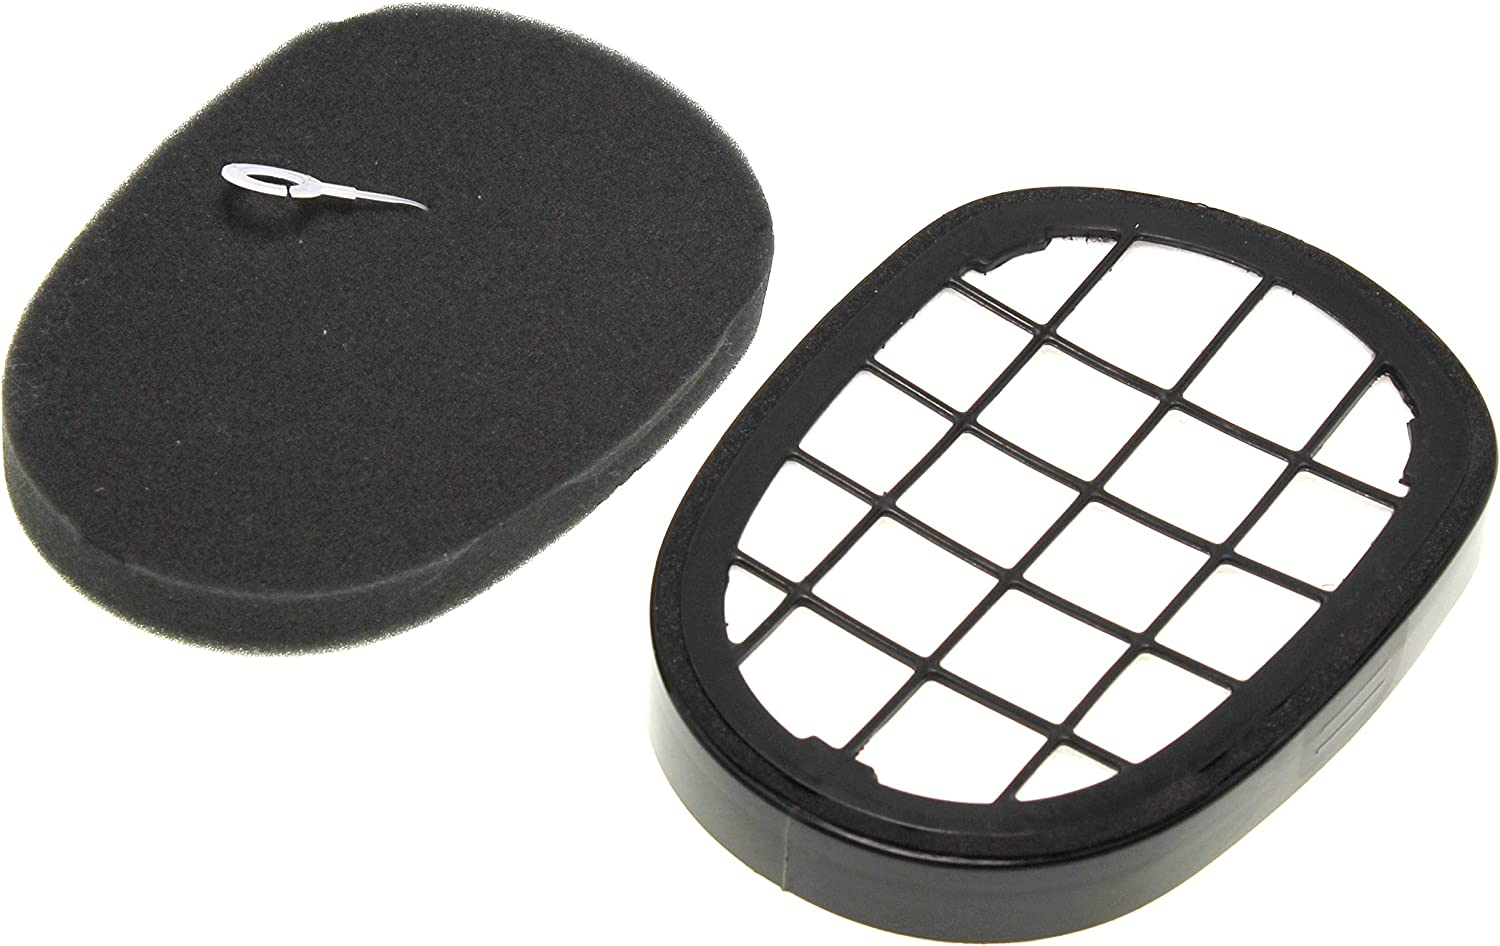 2Pack Filter Insert Like CP0663 For Philips Speed Pro Max FC6812 01 FC6813